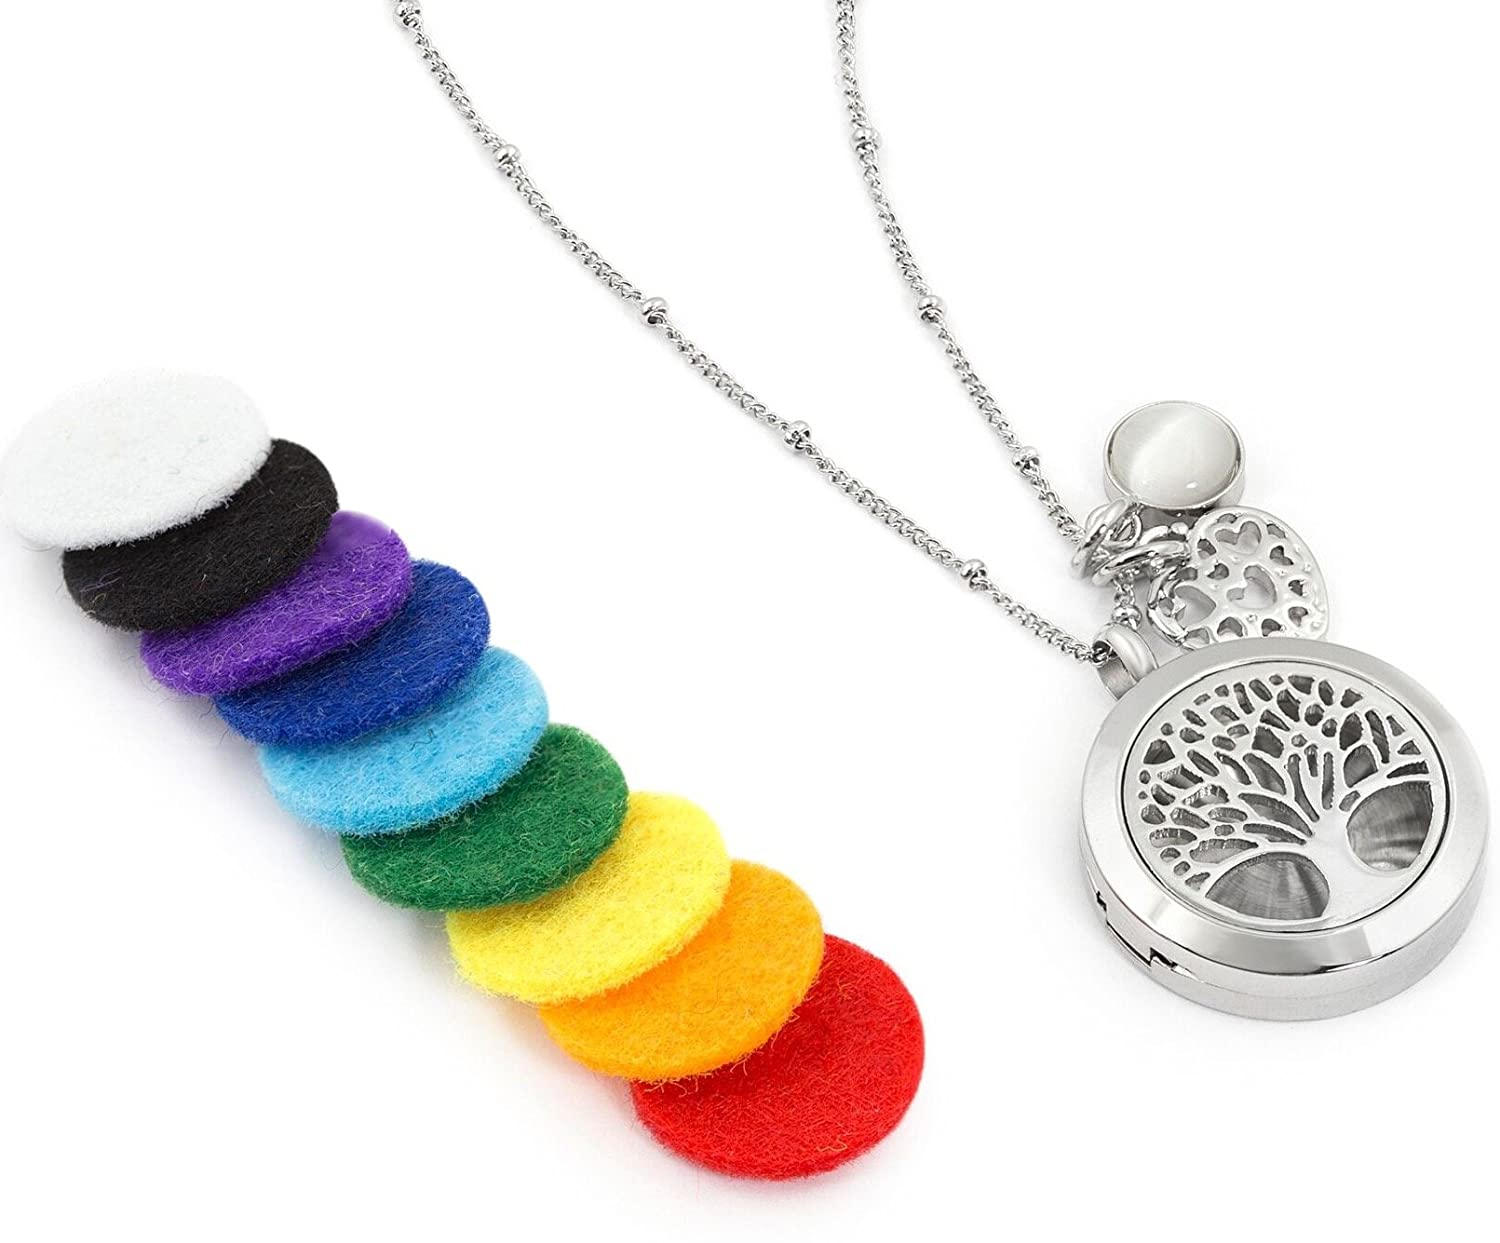 """97fb47303f Amazon.com: Aromatherapy Essential Oil Diffuser Necklace Jewelry -  Aromatherapy Jewelry - Hypoallergenic 316L Surgical Grade Stainless Steel,  20.8"""" Chain + ..."""